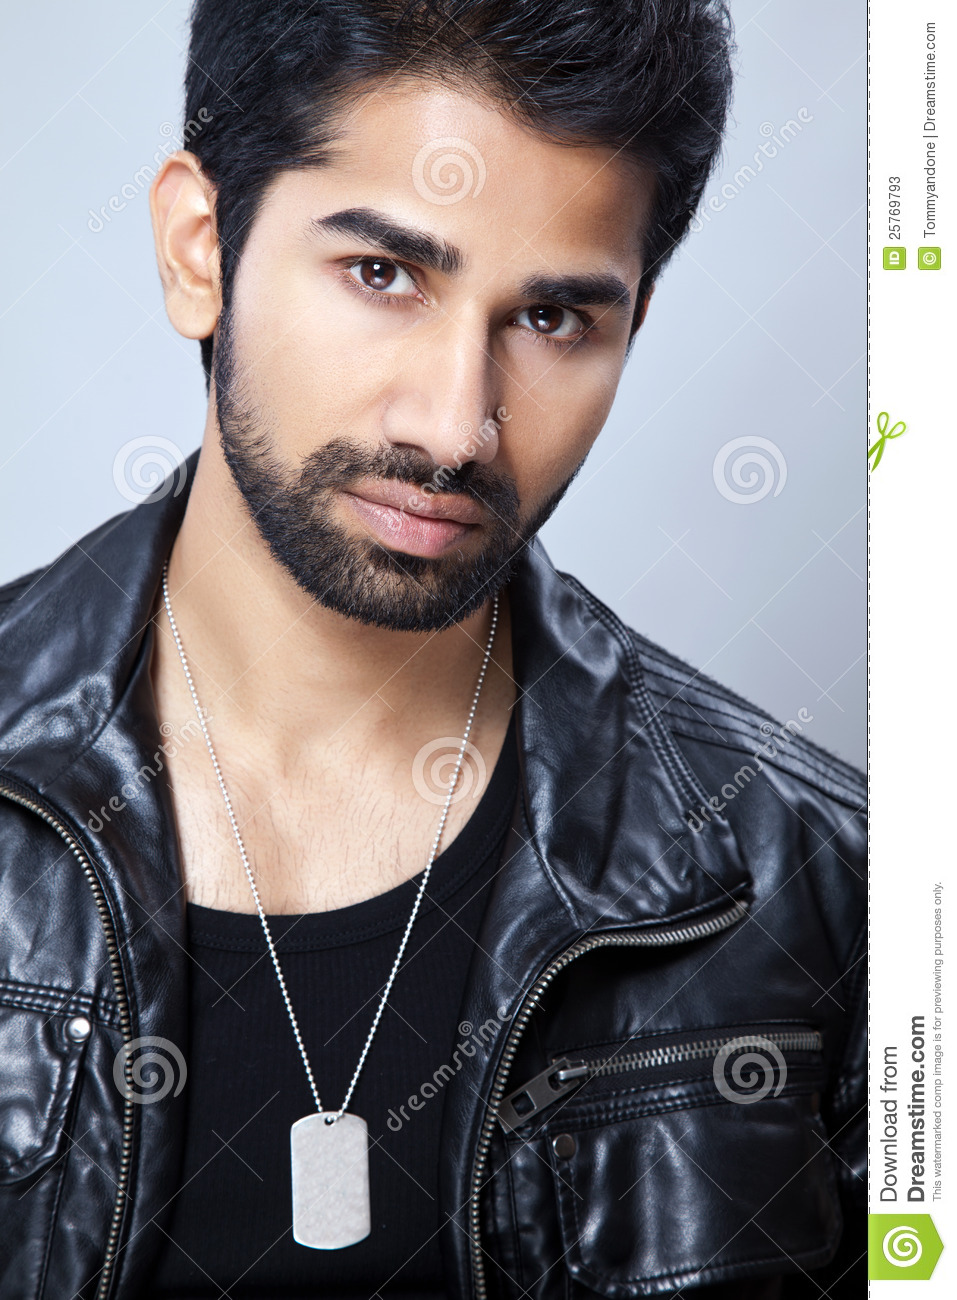 Casual Man Wearing A Leather Jacket Stock Photos - Image: 25769793